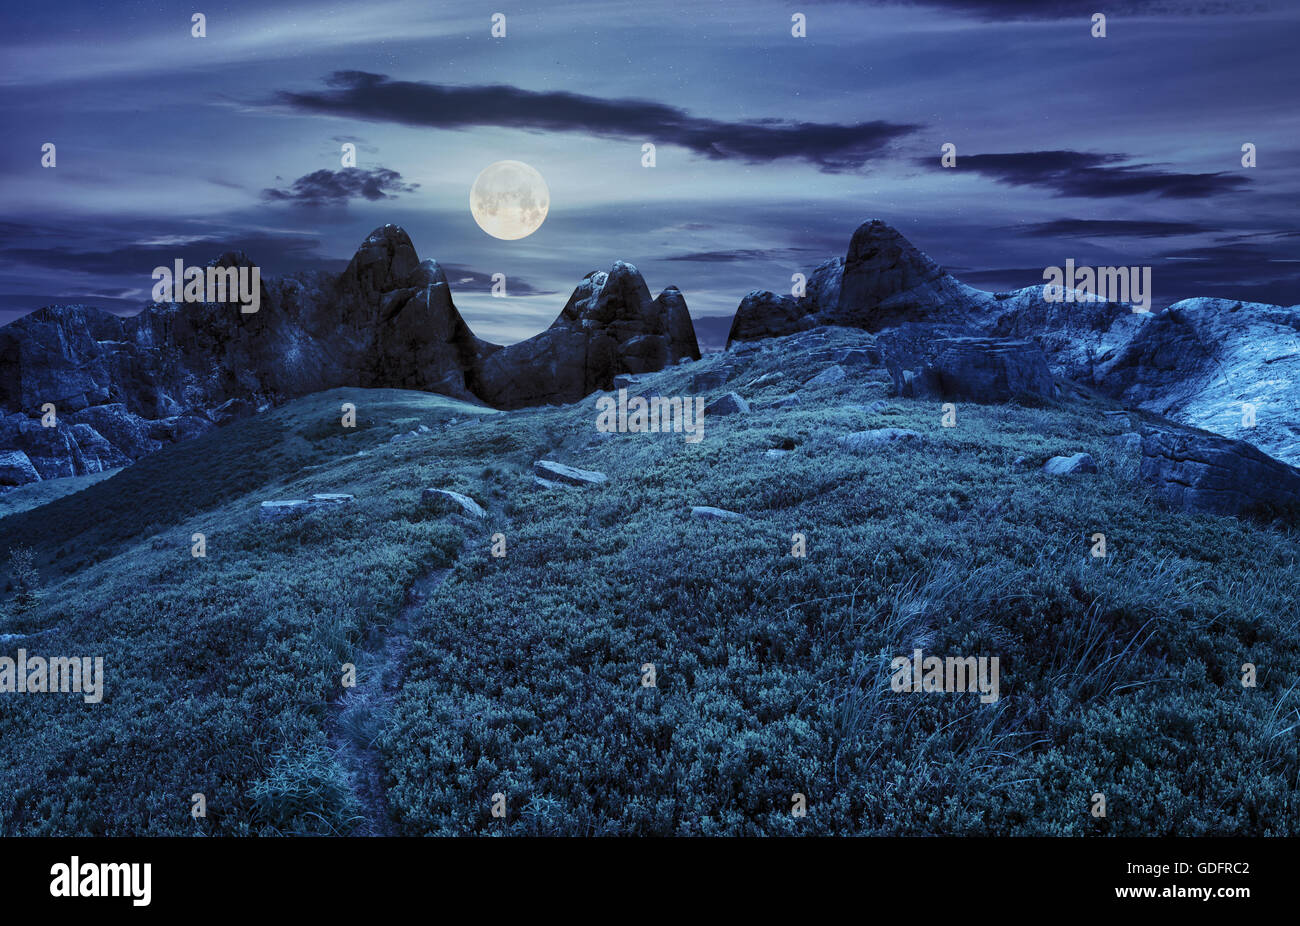 composite landscape with path through hillside meadow with white sharp boulders near cgi mountain peaks at night - Stock Image